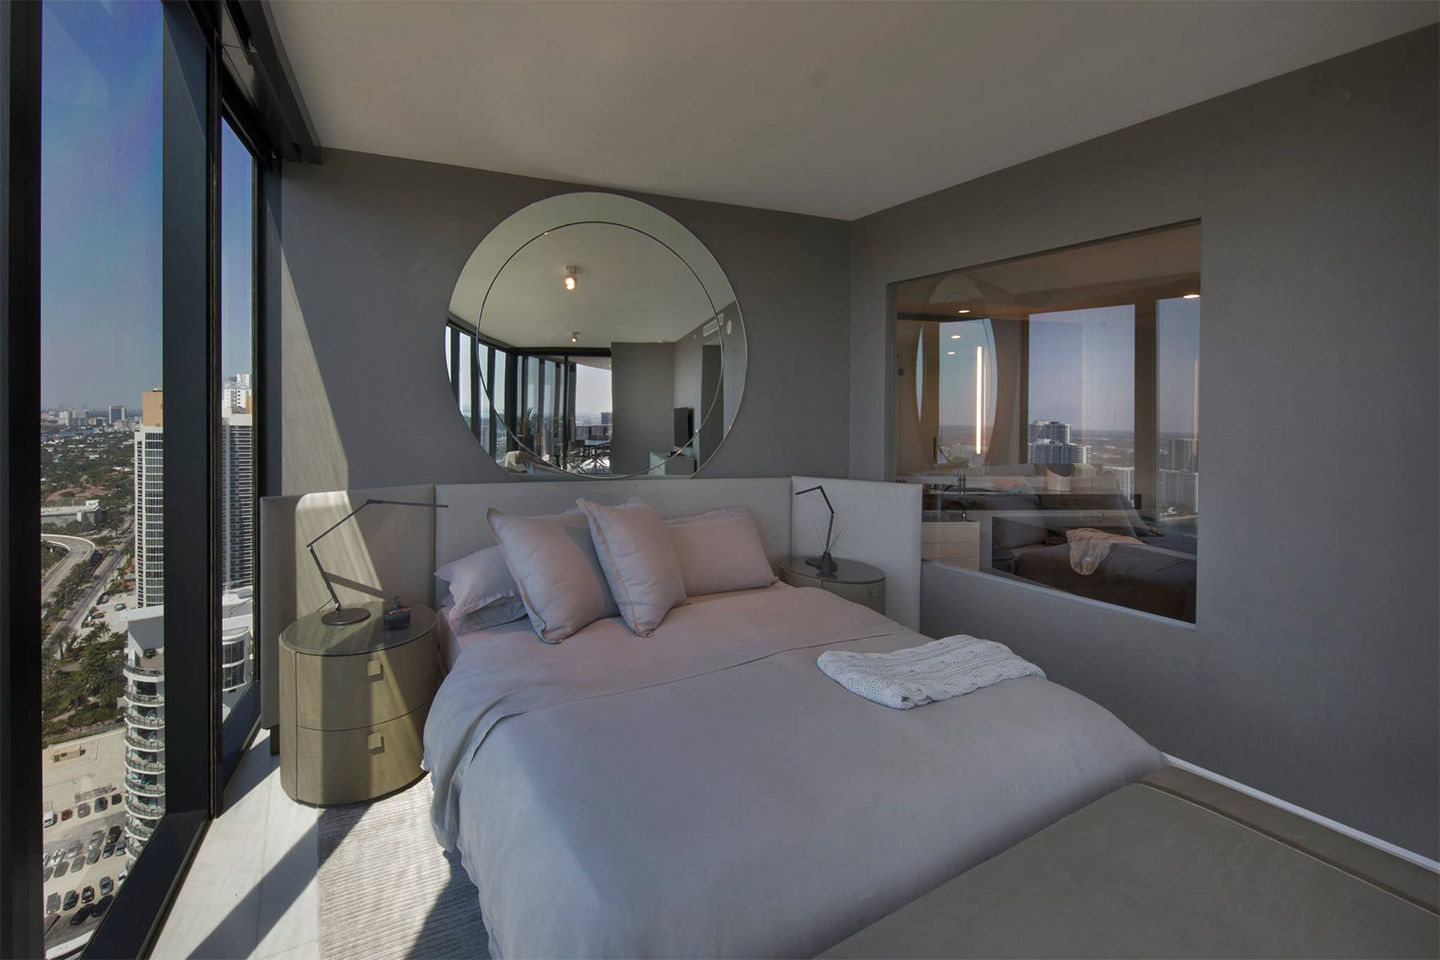 Pictures Of Corvettes >> The $840-Million Porsche Design Tower Is the Ultimate in Luxury Living